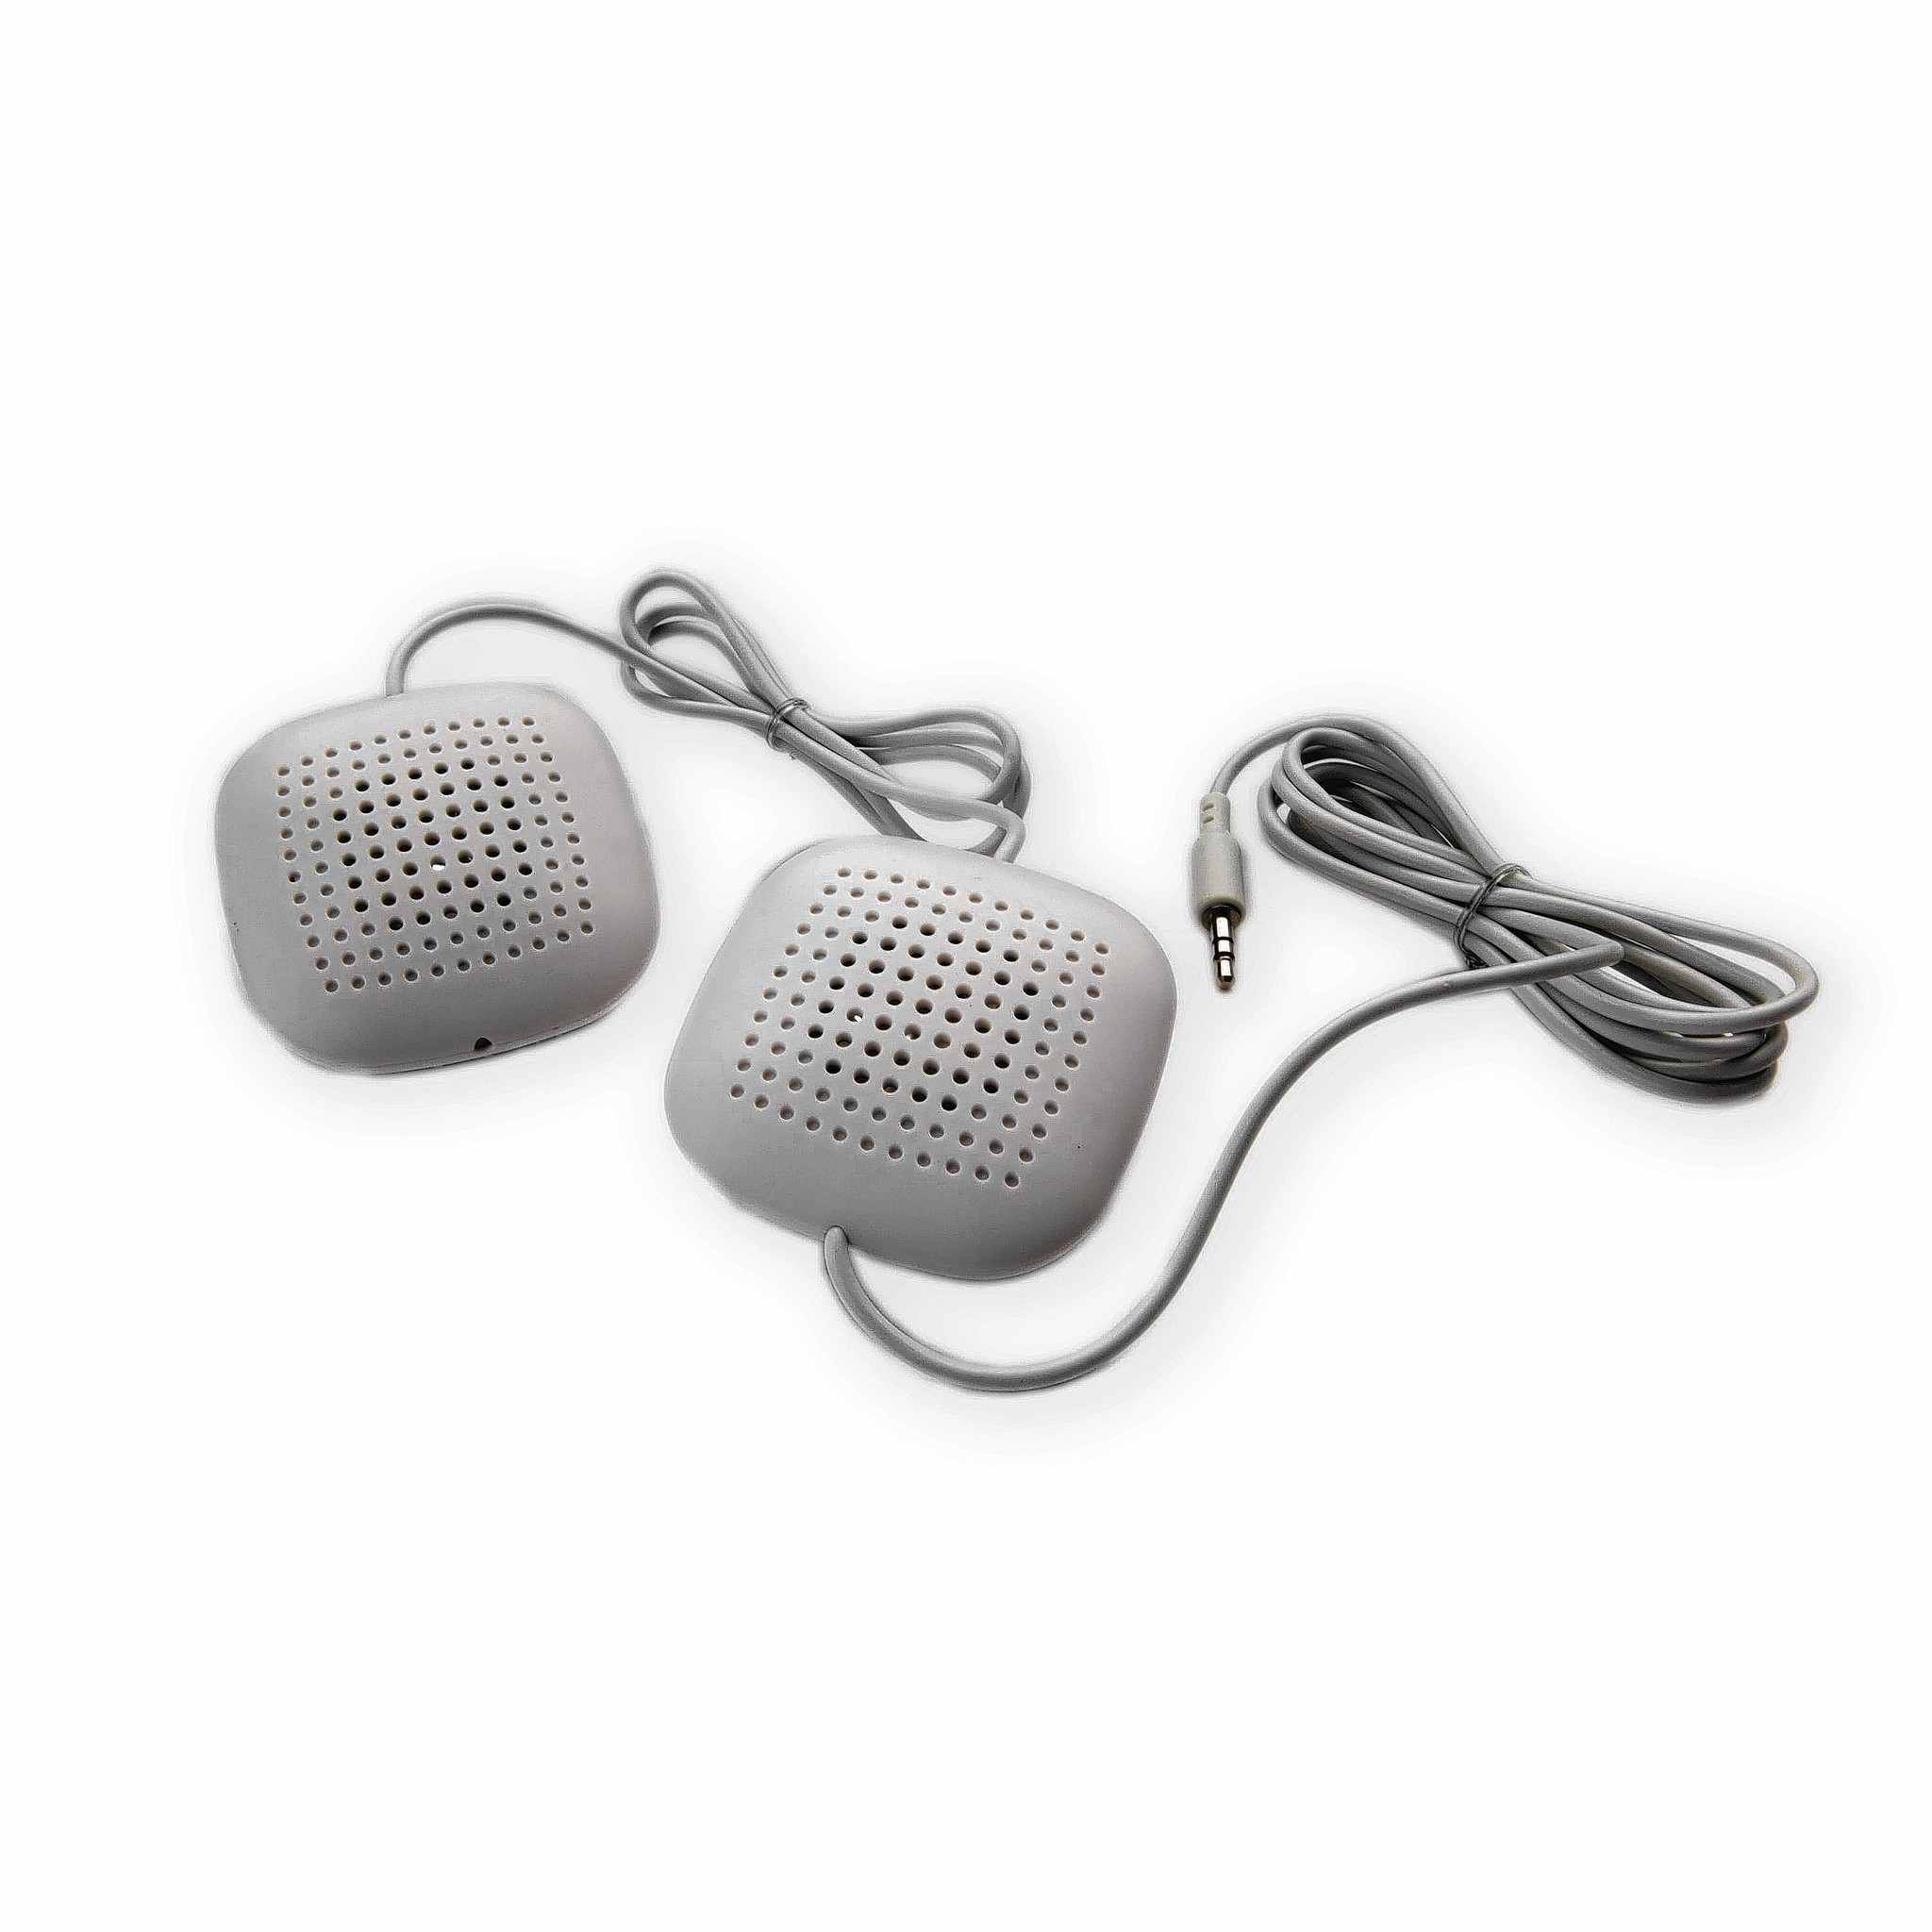 Oasis Sleep Therapy Pillow Speakers